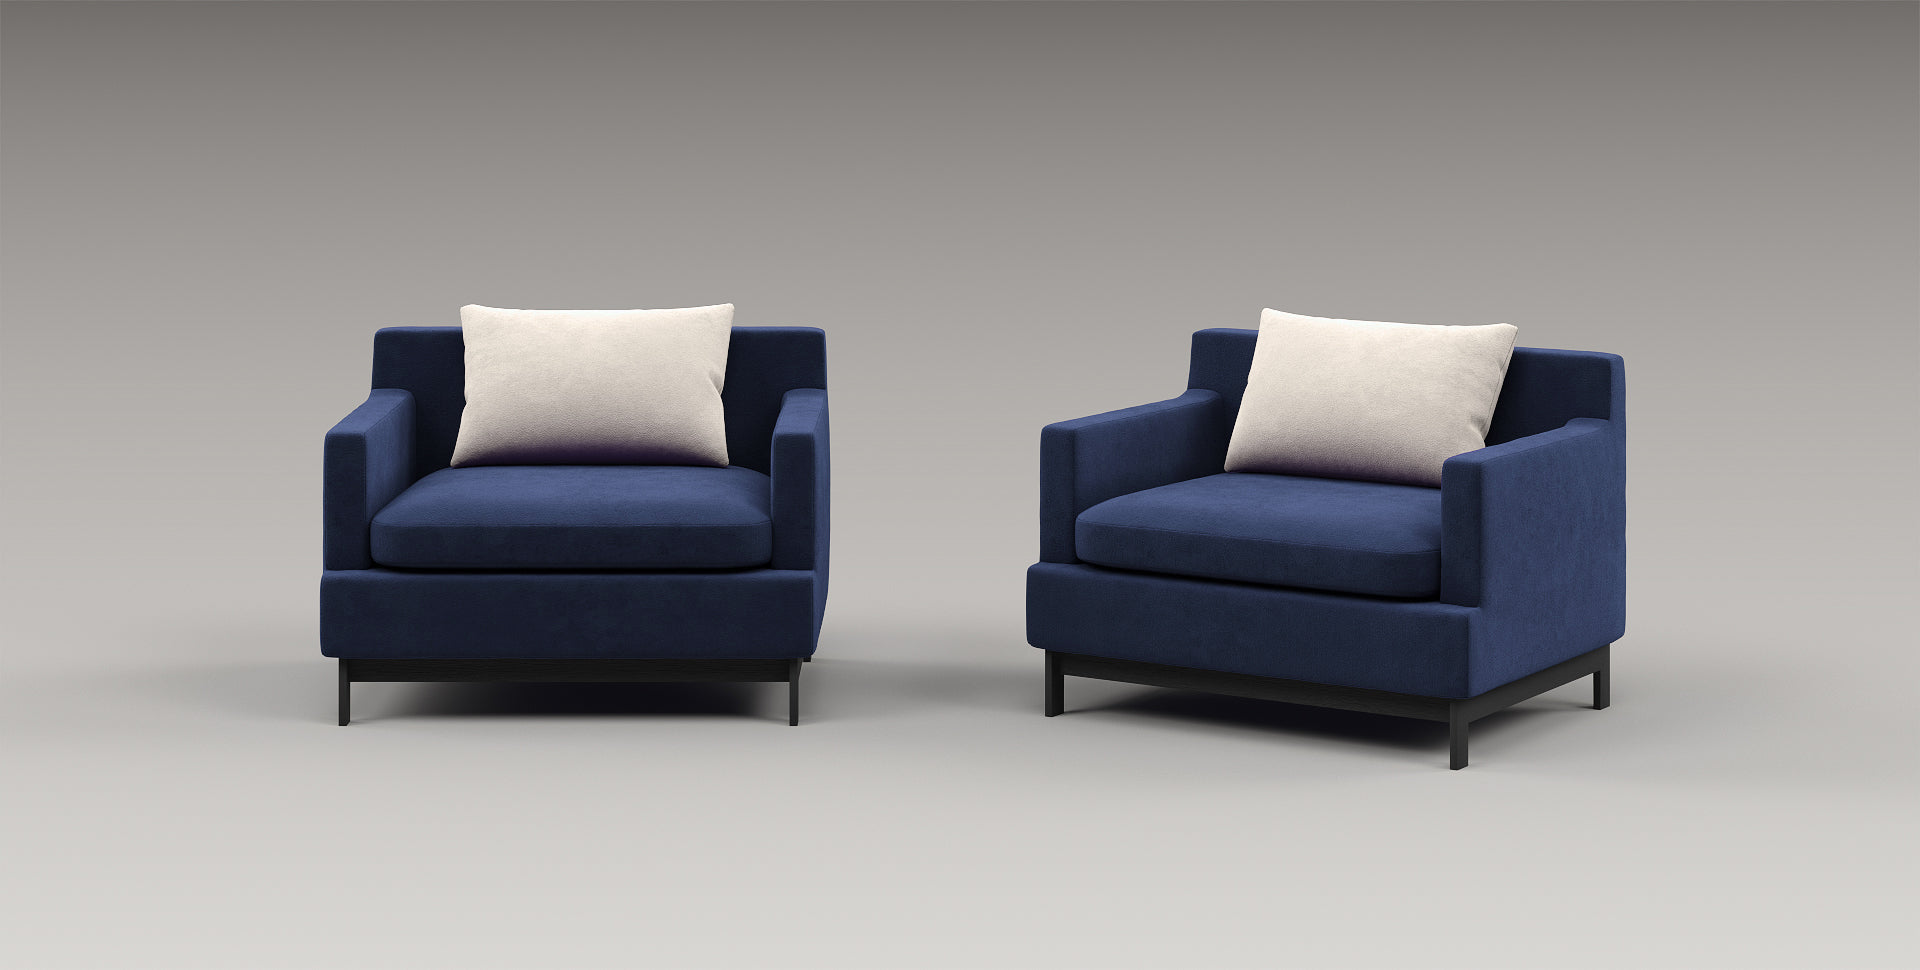 blue chair, upholstered sofa, upholstered chair, leather armchair, suede armchair, velvet armchair, minimalist design, Leonard, small sofa, comfortable armchair, comfortable lounge chair, akar de Nissim, luxury furniture, designer furniture, plush pillow, plush couch, plush sofa, navy blue armchair, big lounge chair,